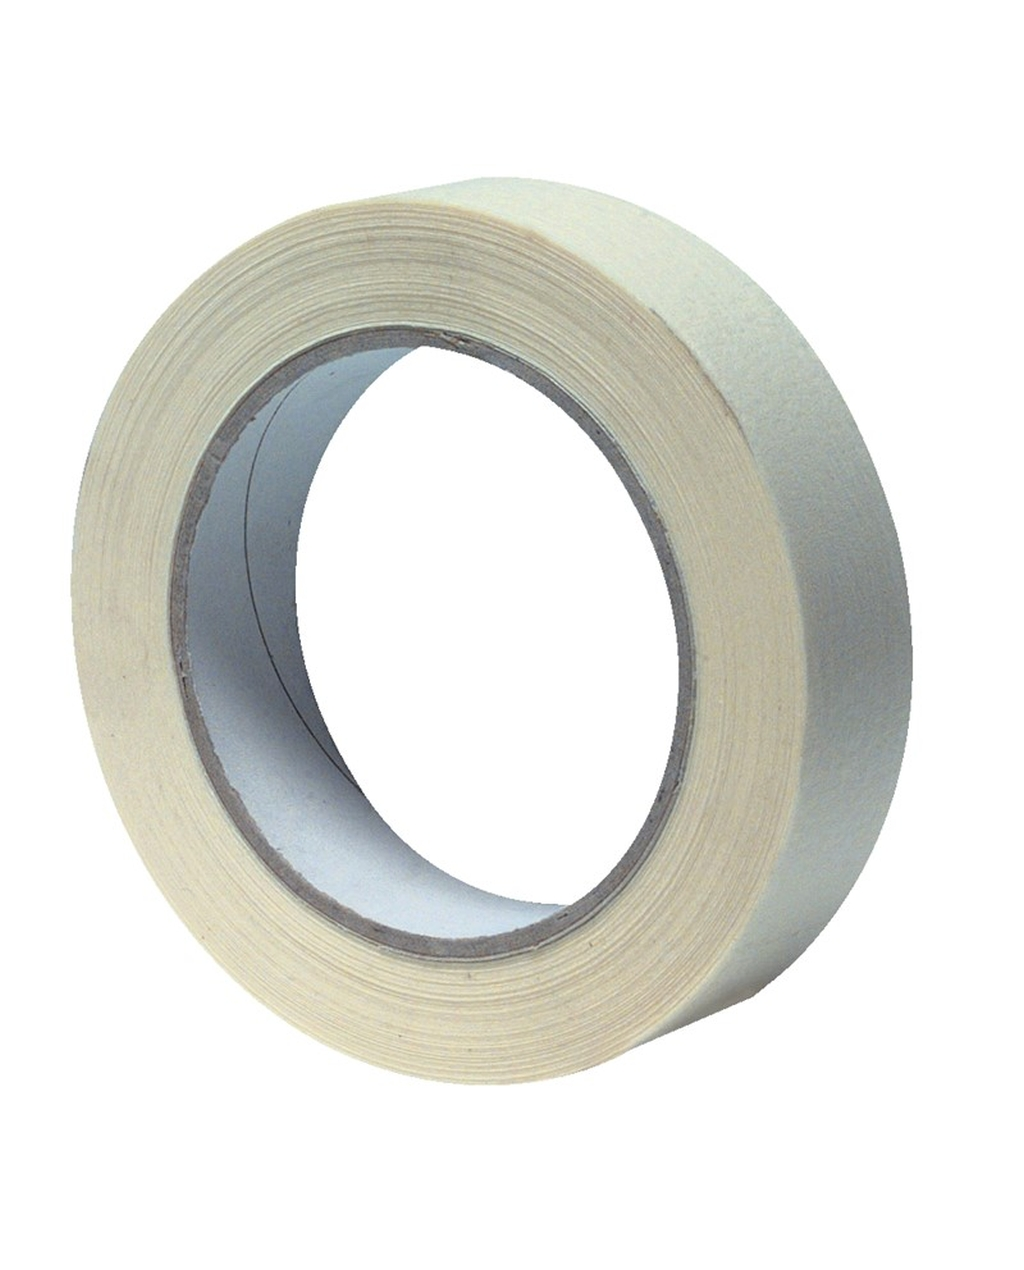 Masking Tape - 25mm x 10m, 25mm Core